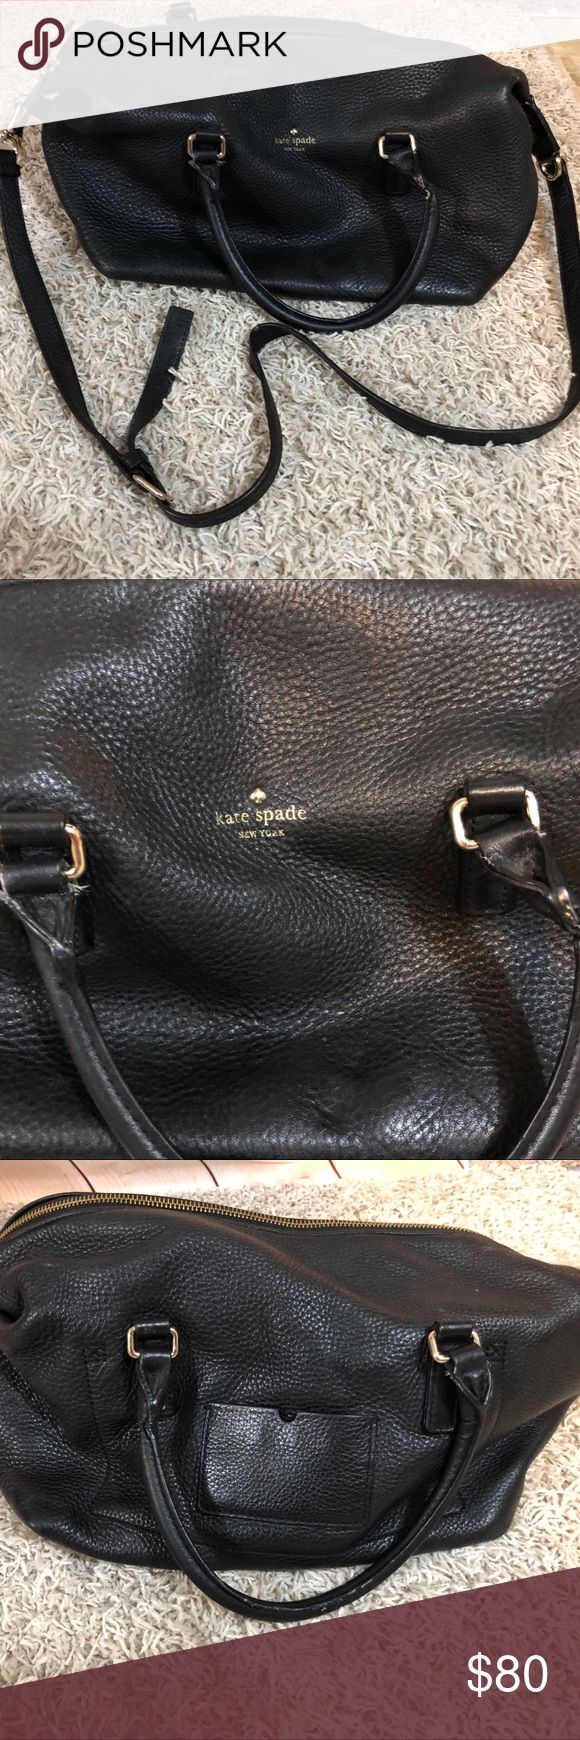 Kate Spade Black Pebbled Leather Hobo Shoulder Bag This is a used bag. Some staining on the lining because, Mom bag ;) But Leather is without damage and is super roomy. Shoulder strap and hand straps. Metal finishing show some wear. Very good every day bag. kate spade Bags Hobos